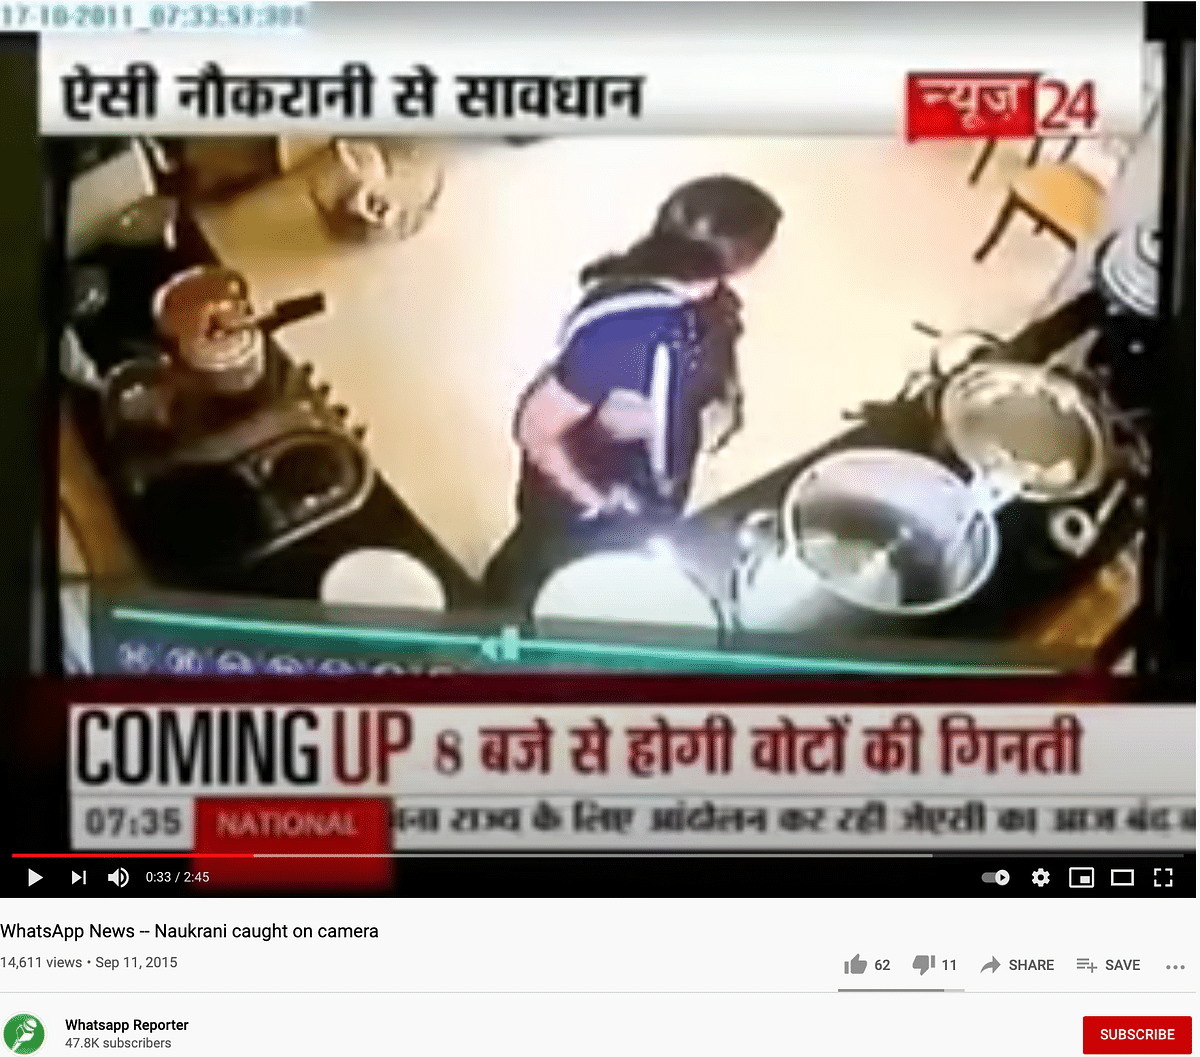 Old Clip of House Help Contaminating Food Given Communal Spin